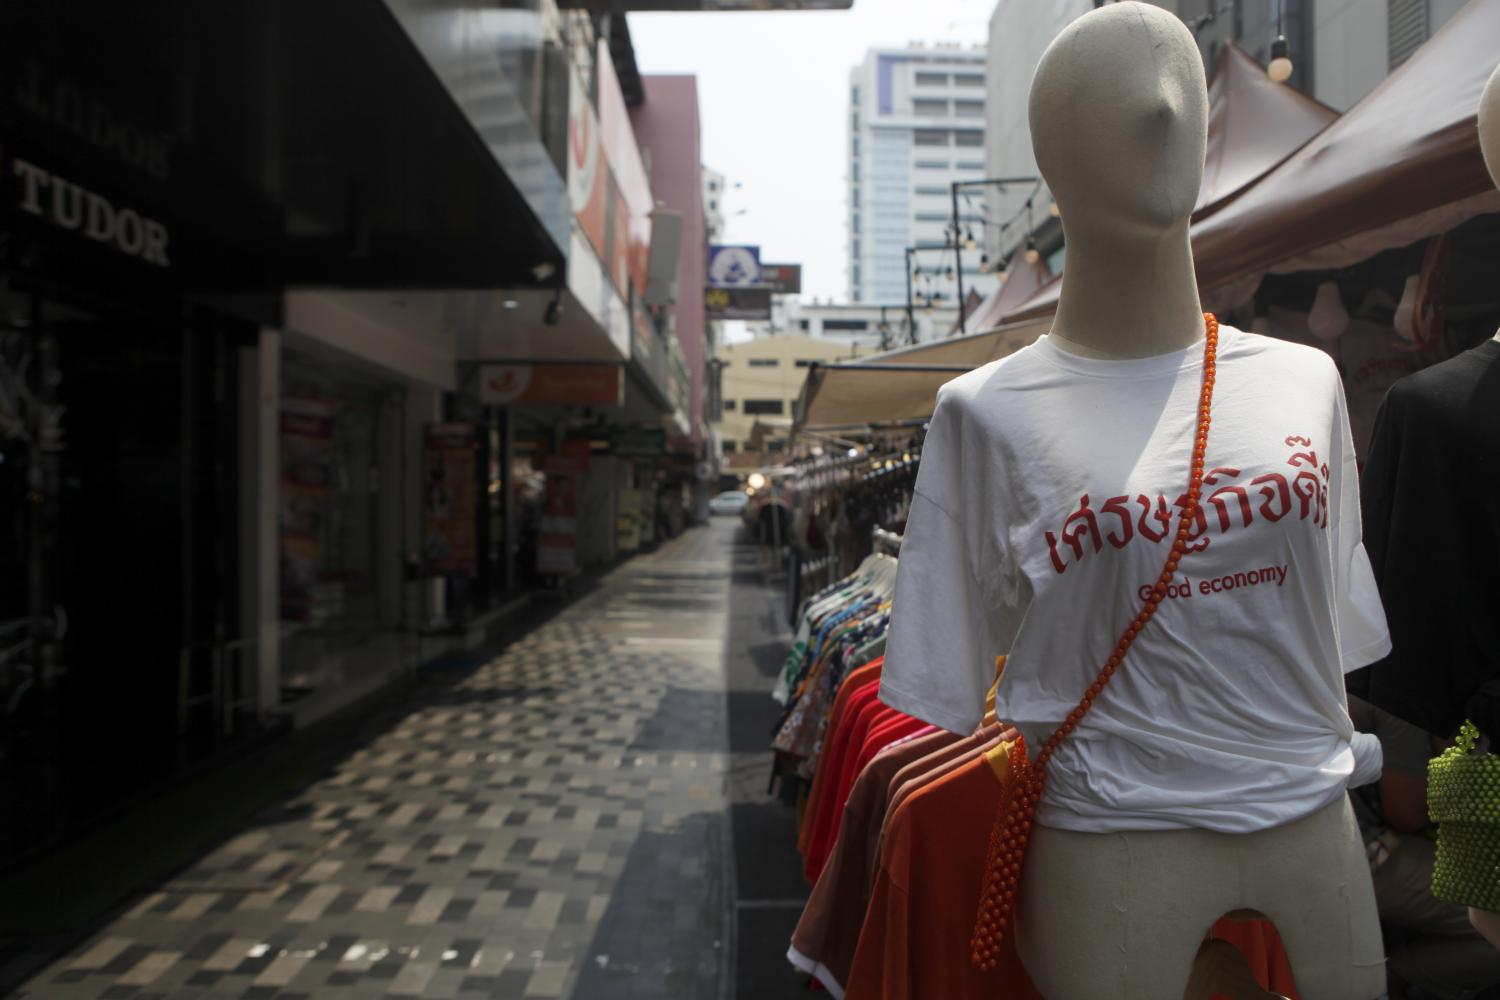 A mannequin wearing a T-shirt emblazoned with the words 'Settakij Dee Dee' in Thai and 'good economy' in English, stands in Siam Square on March 19. (Photo by Nutthawat Wicheanbut)